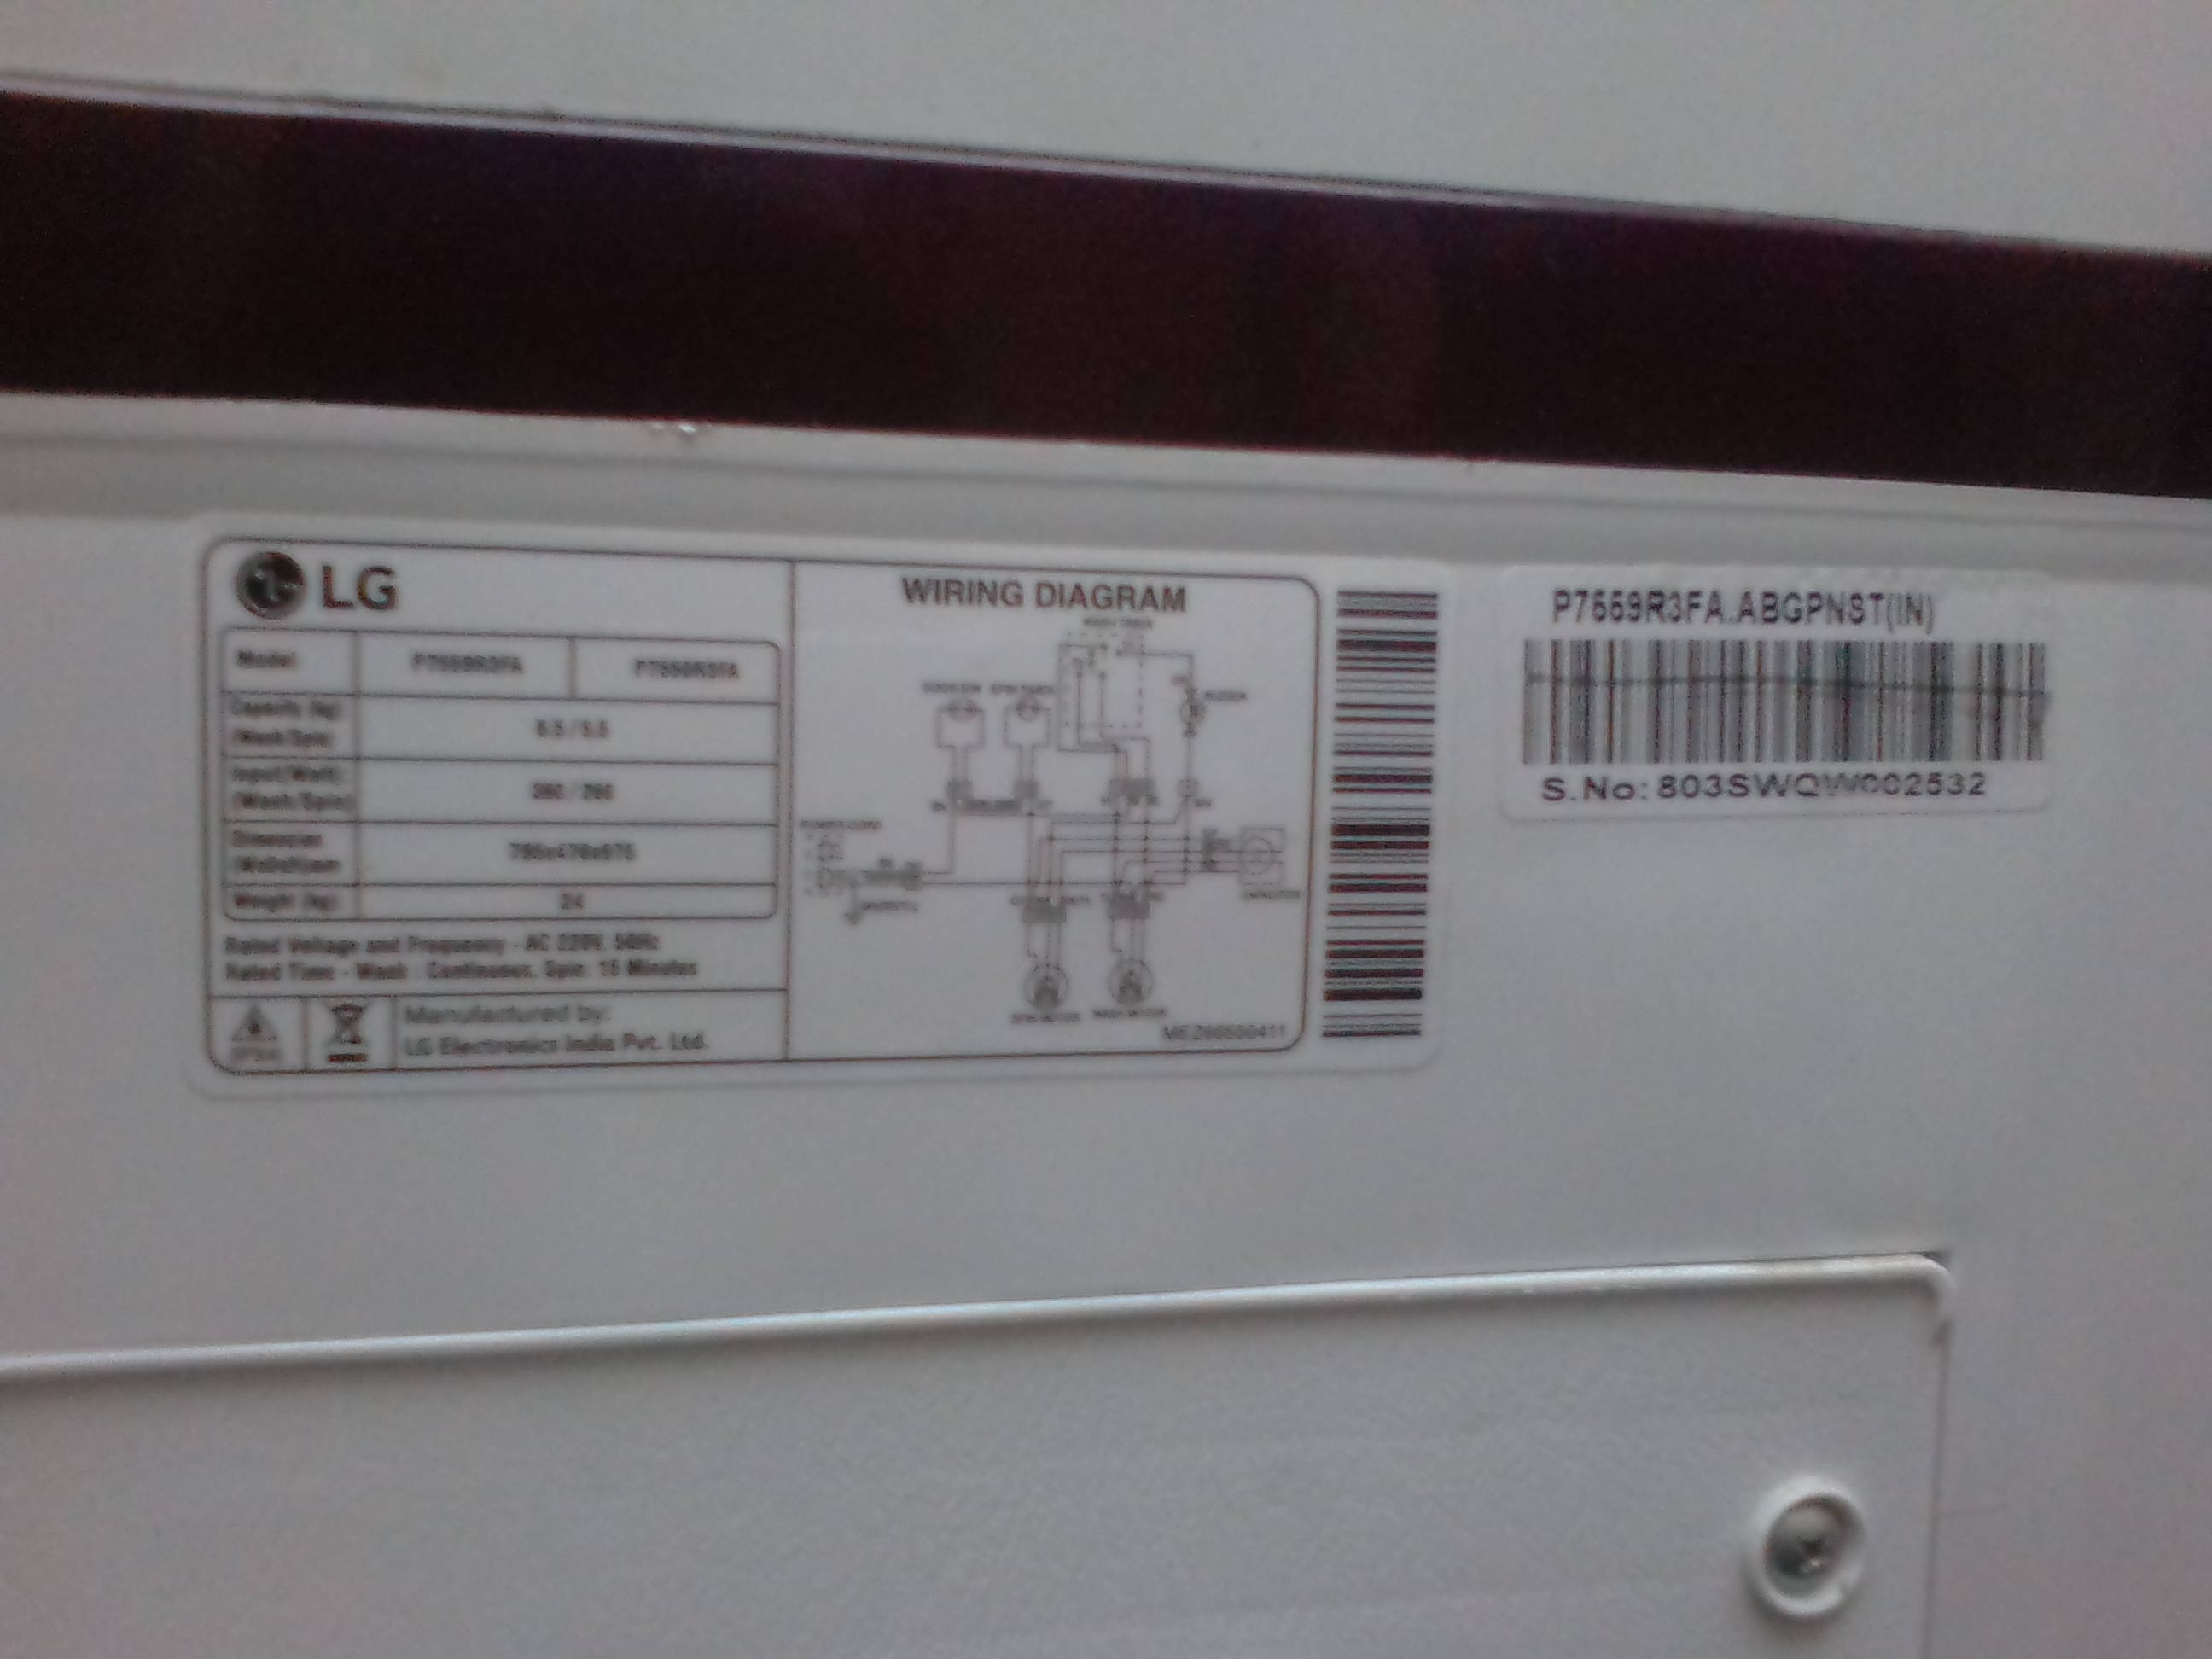 Lg Top Load Washing Machine Wiring Diagram Diagrams And Godrej Fully Automatic View Images How To Repair A Water Inlet Valve